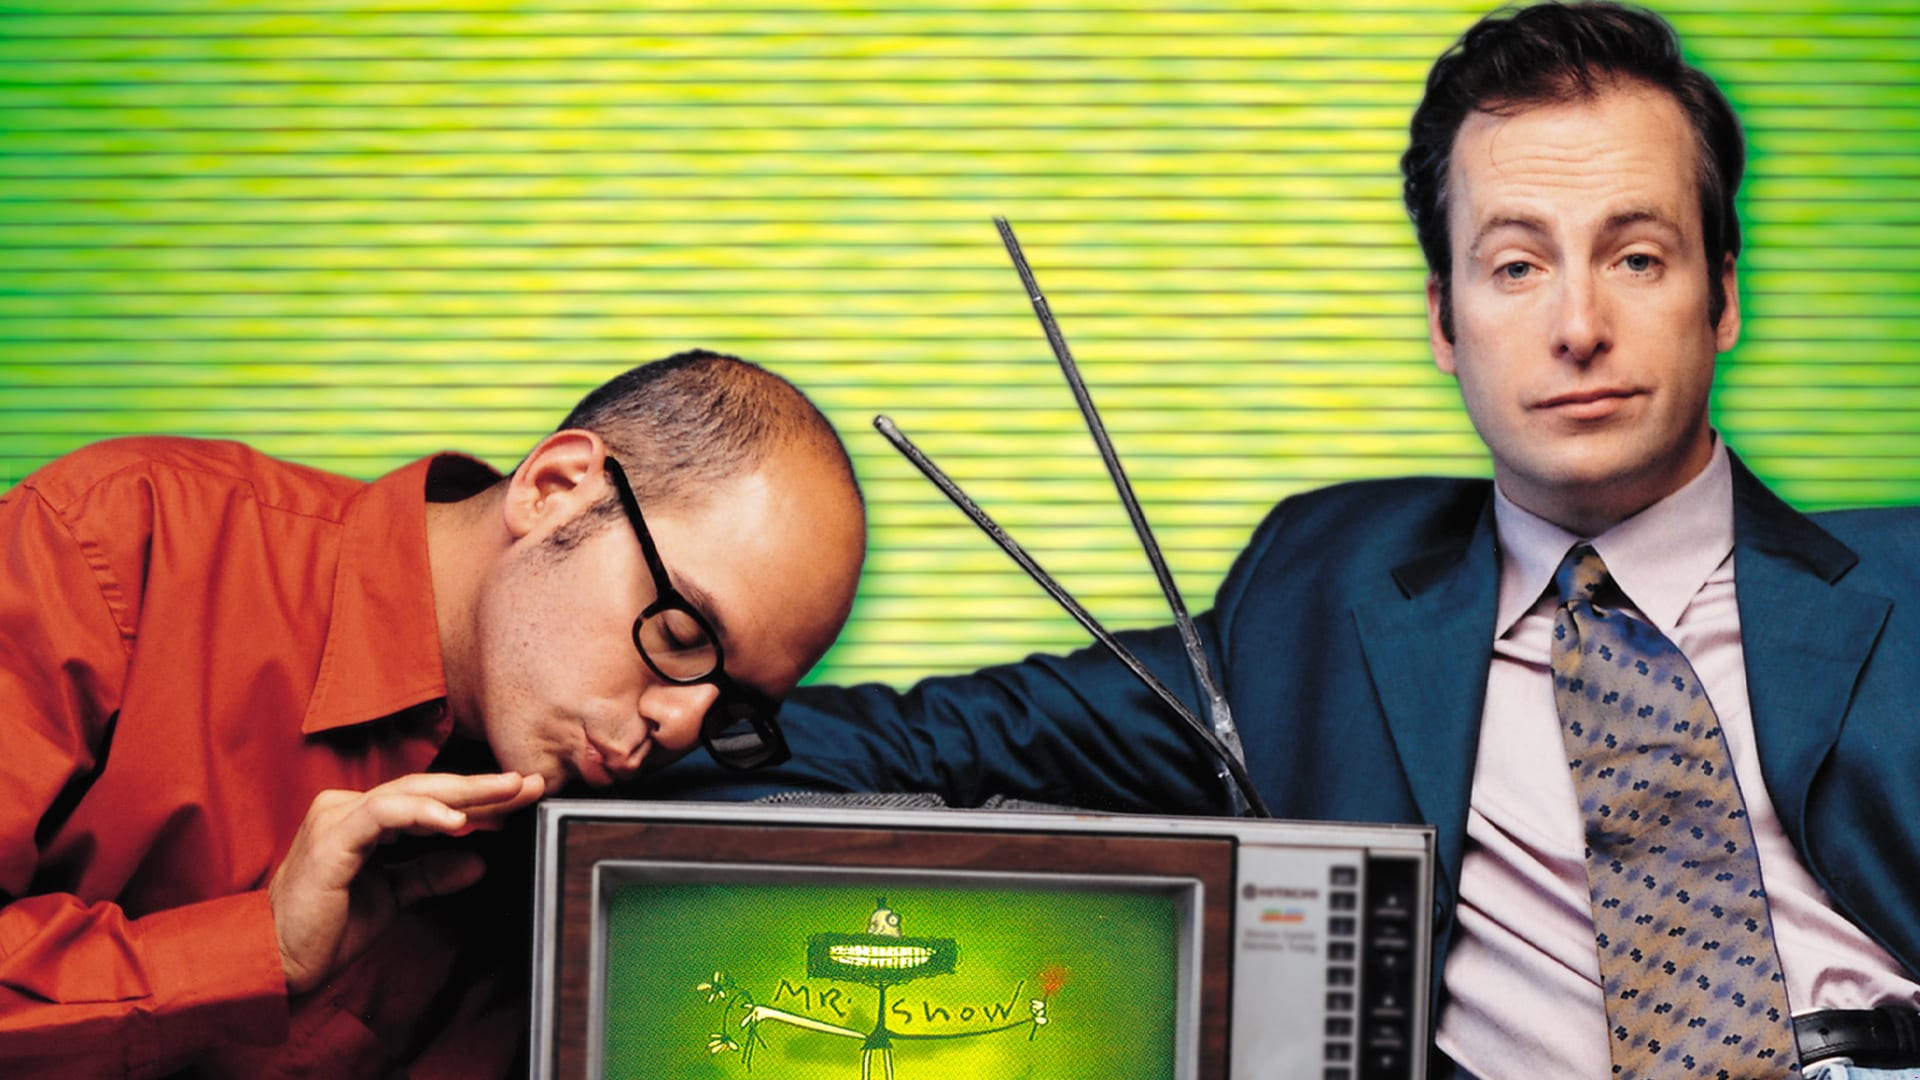 <span>Mr. Show and the Incredible, The Best Of - Fantastical News Report</span>